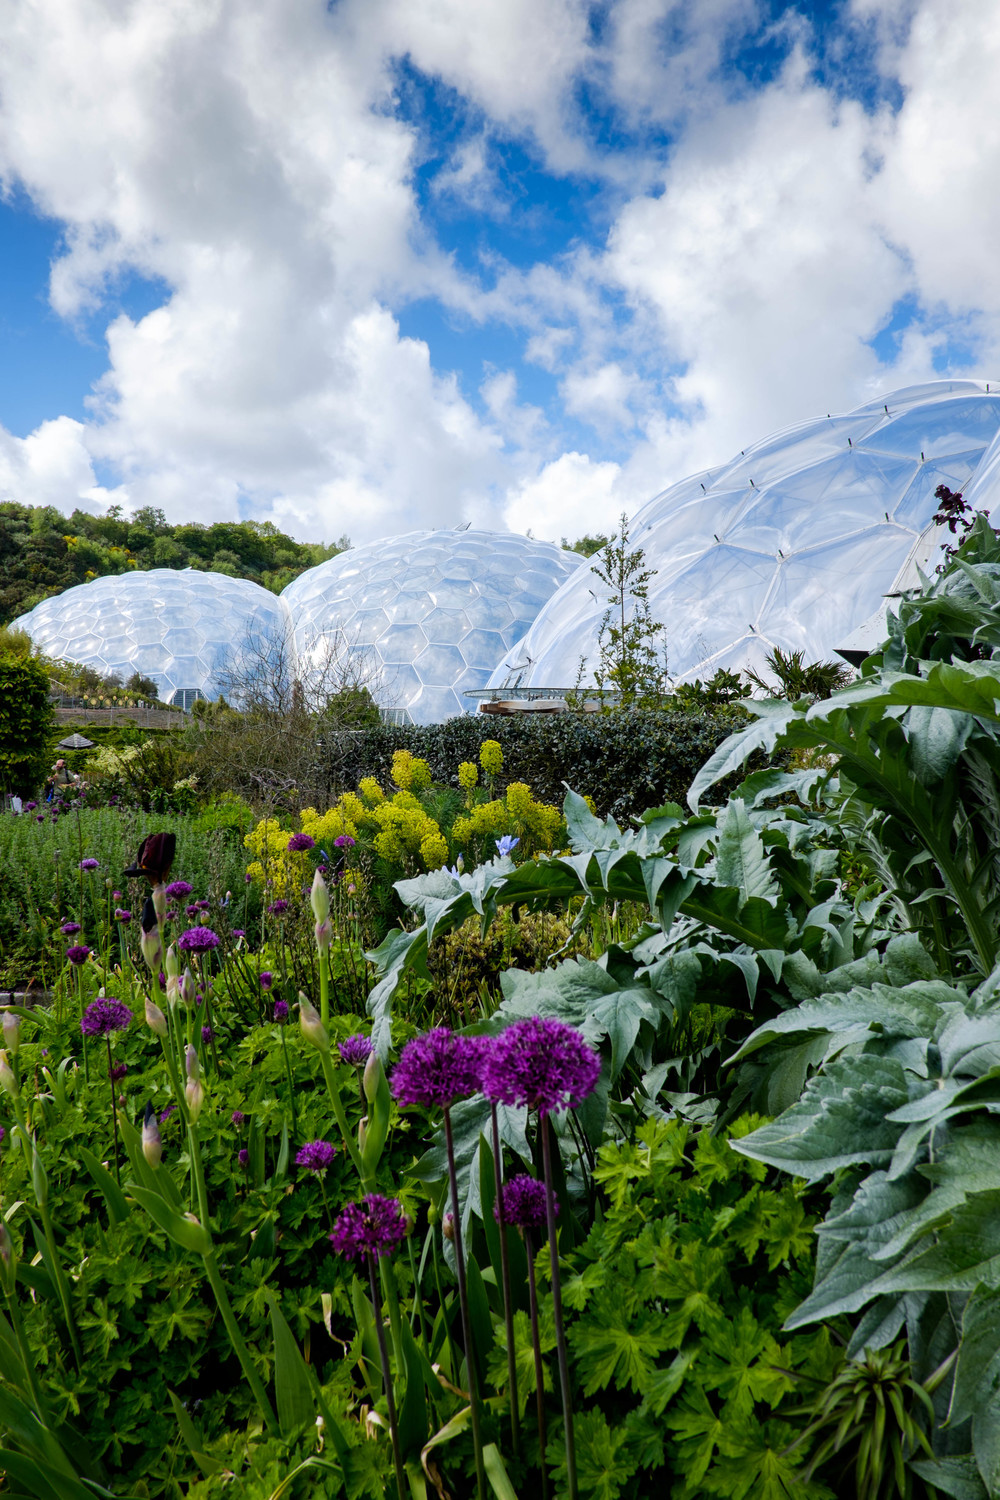 The biomes at the eden project